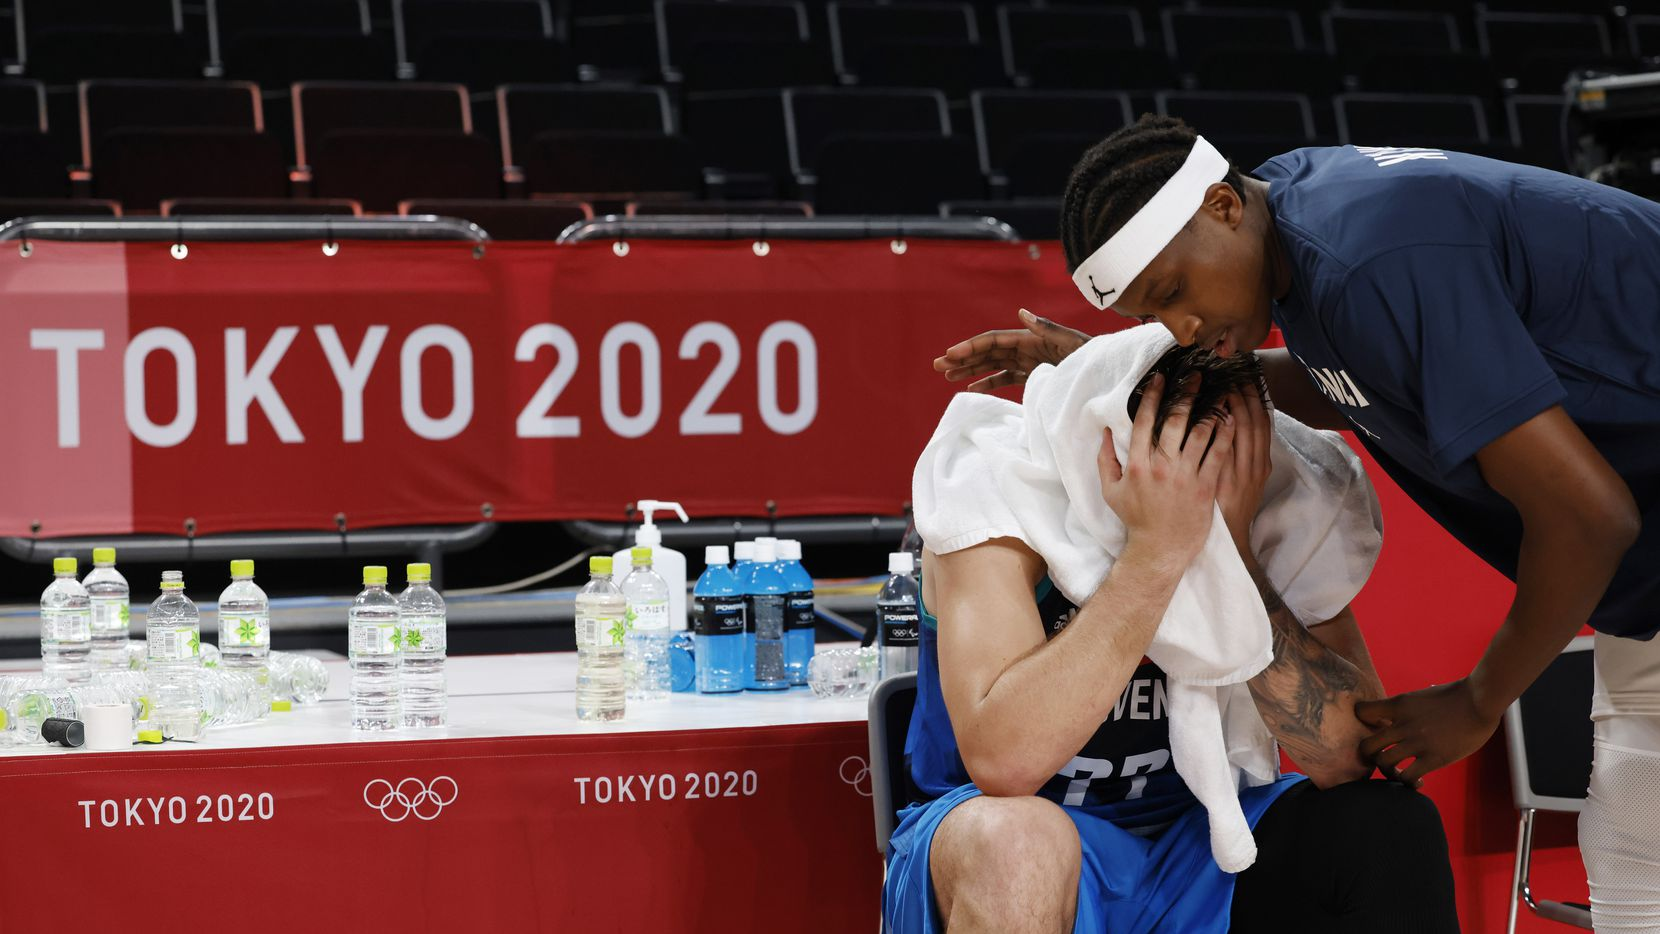 Slovenia's Luka Doncic (77) sits dejected as France's Frank Ntilikina (1) speaks to him after losing to France 90-89 in a men's basketball semifinal at the postponed 2020 Tokyo Olympics at Saitama Super Arena, on Thursday, August 5, 2021, in Saitama, Japan. France defeated Slovenia 90-89. Slovenia will play in the bronze medal game.